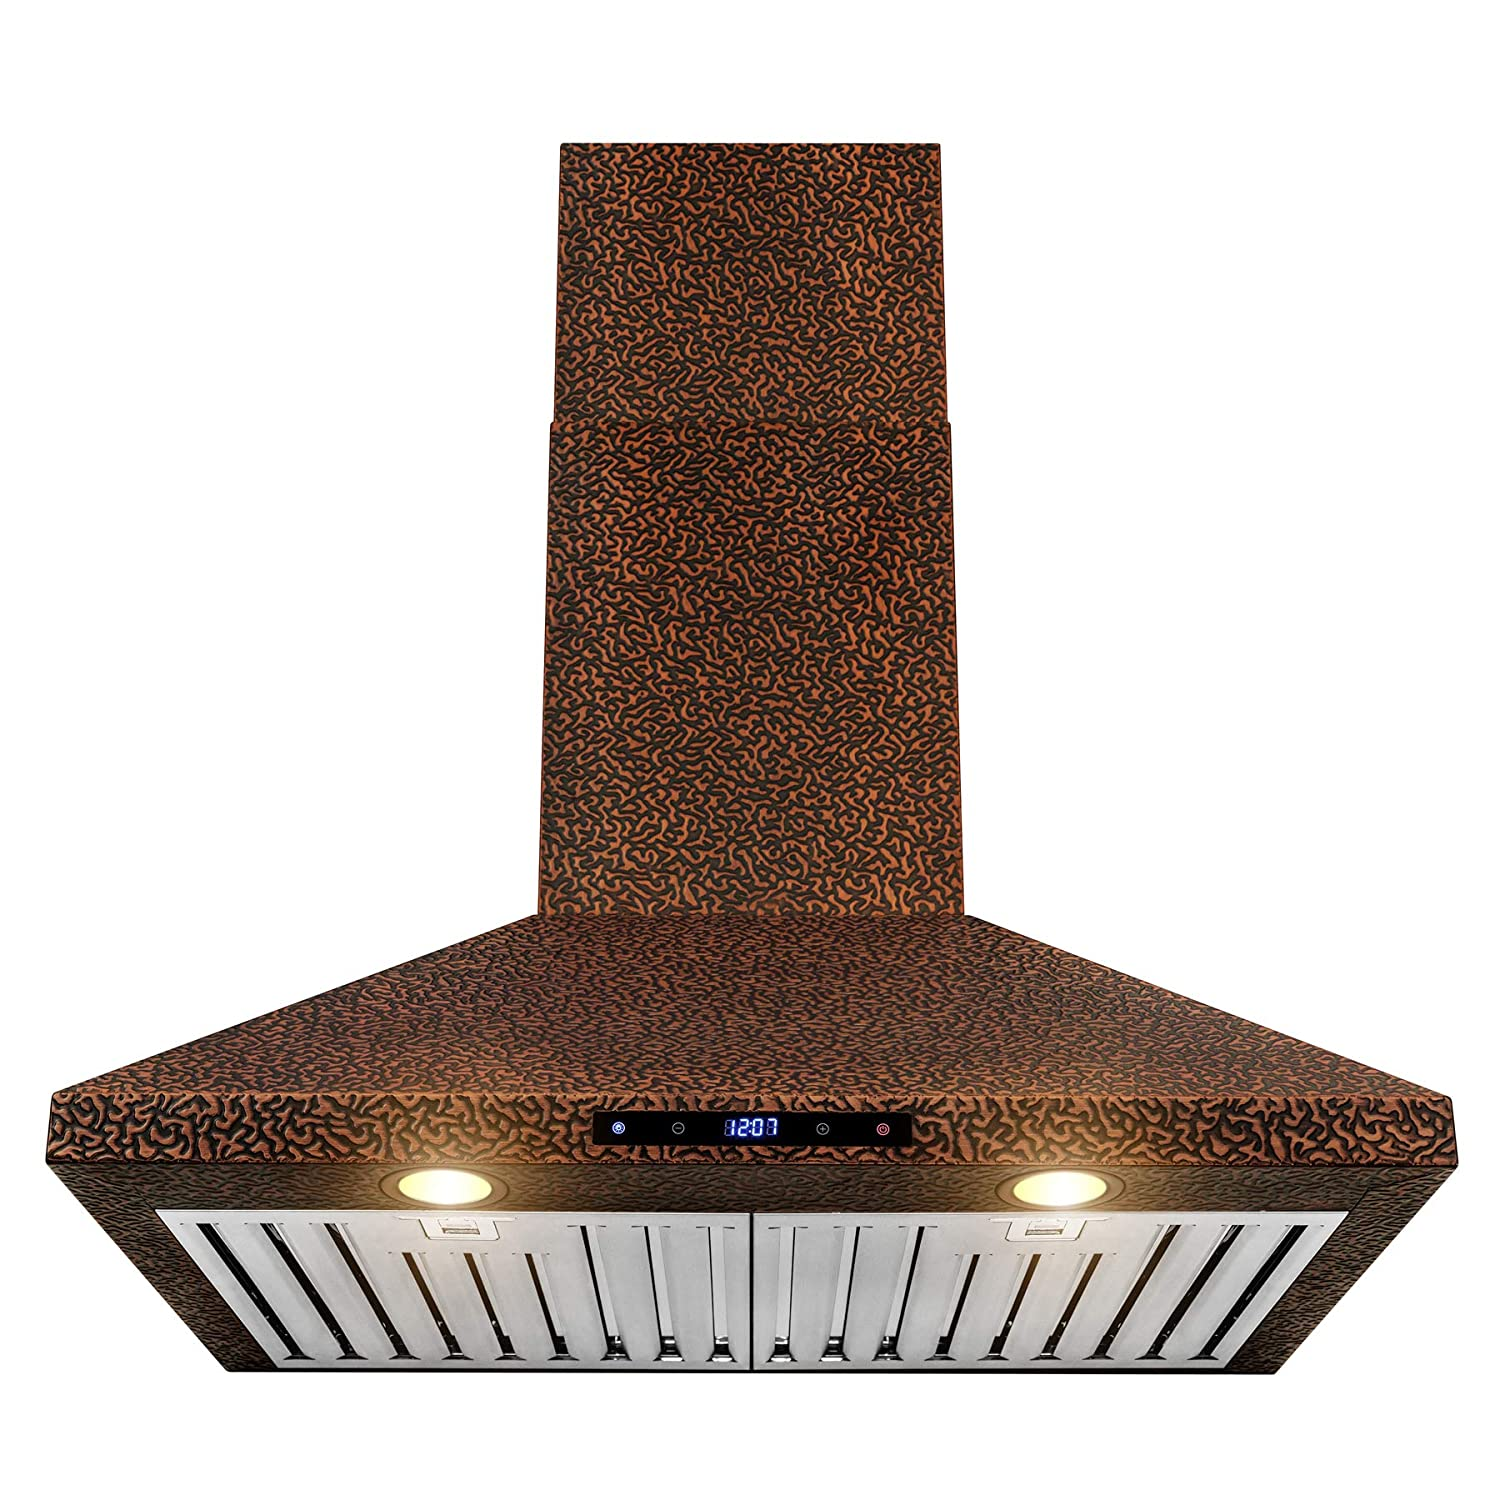 "AKDY Wall Mount Range Hood –30"" Embossed Copper Hood Fan for Kitchen – 4-Speed Professional Quiet Motor – Touch Control Panel – Modern Design – Dishwasher-Safe Baffle Filters"